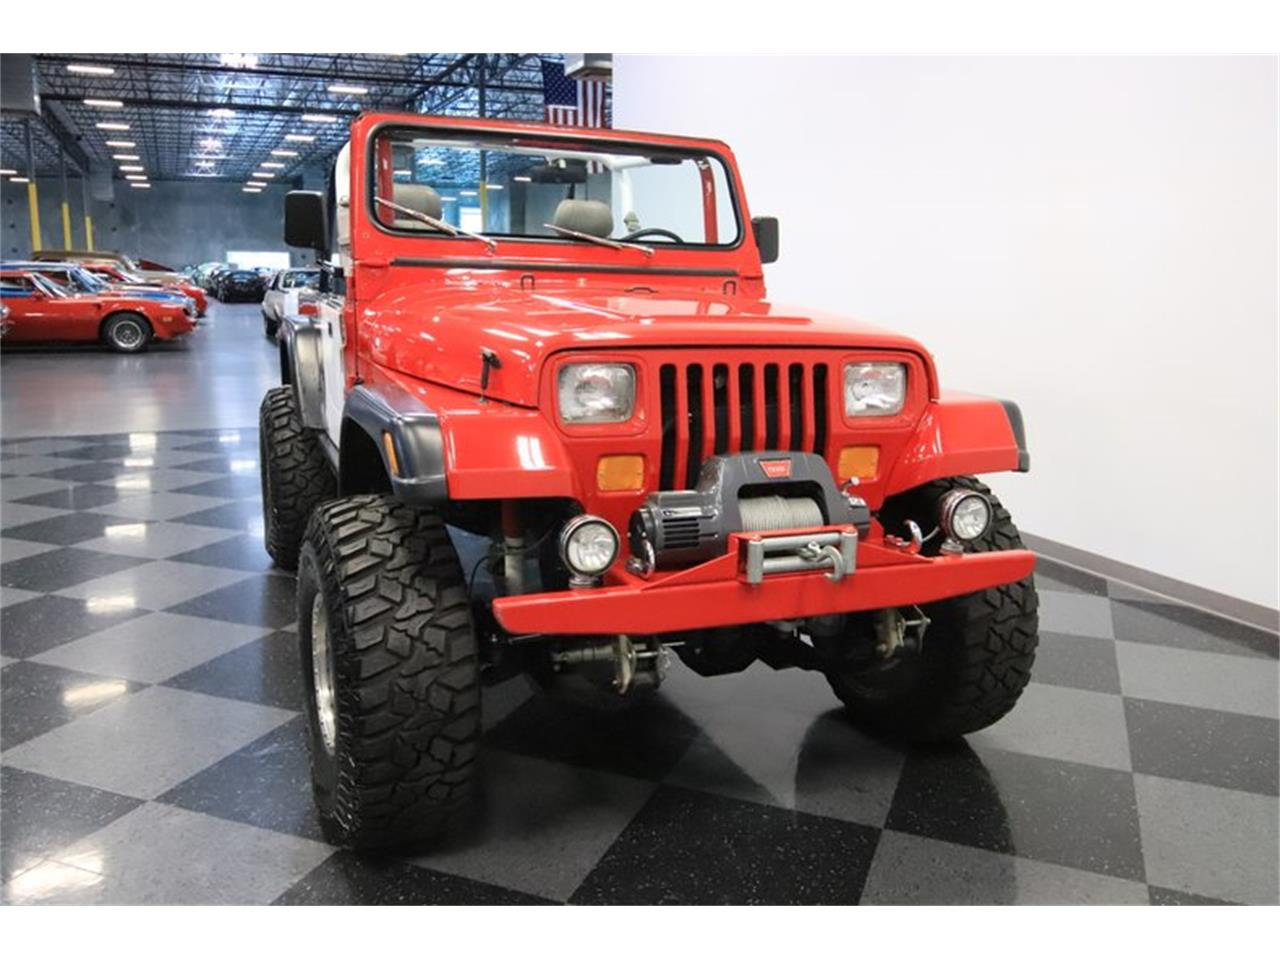 Large Picture of 1983 CJ8 Scrambler located in Arizona - $36,995.00 - Q5HM